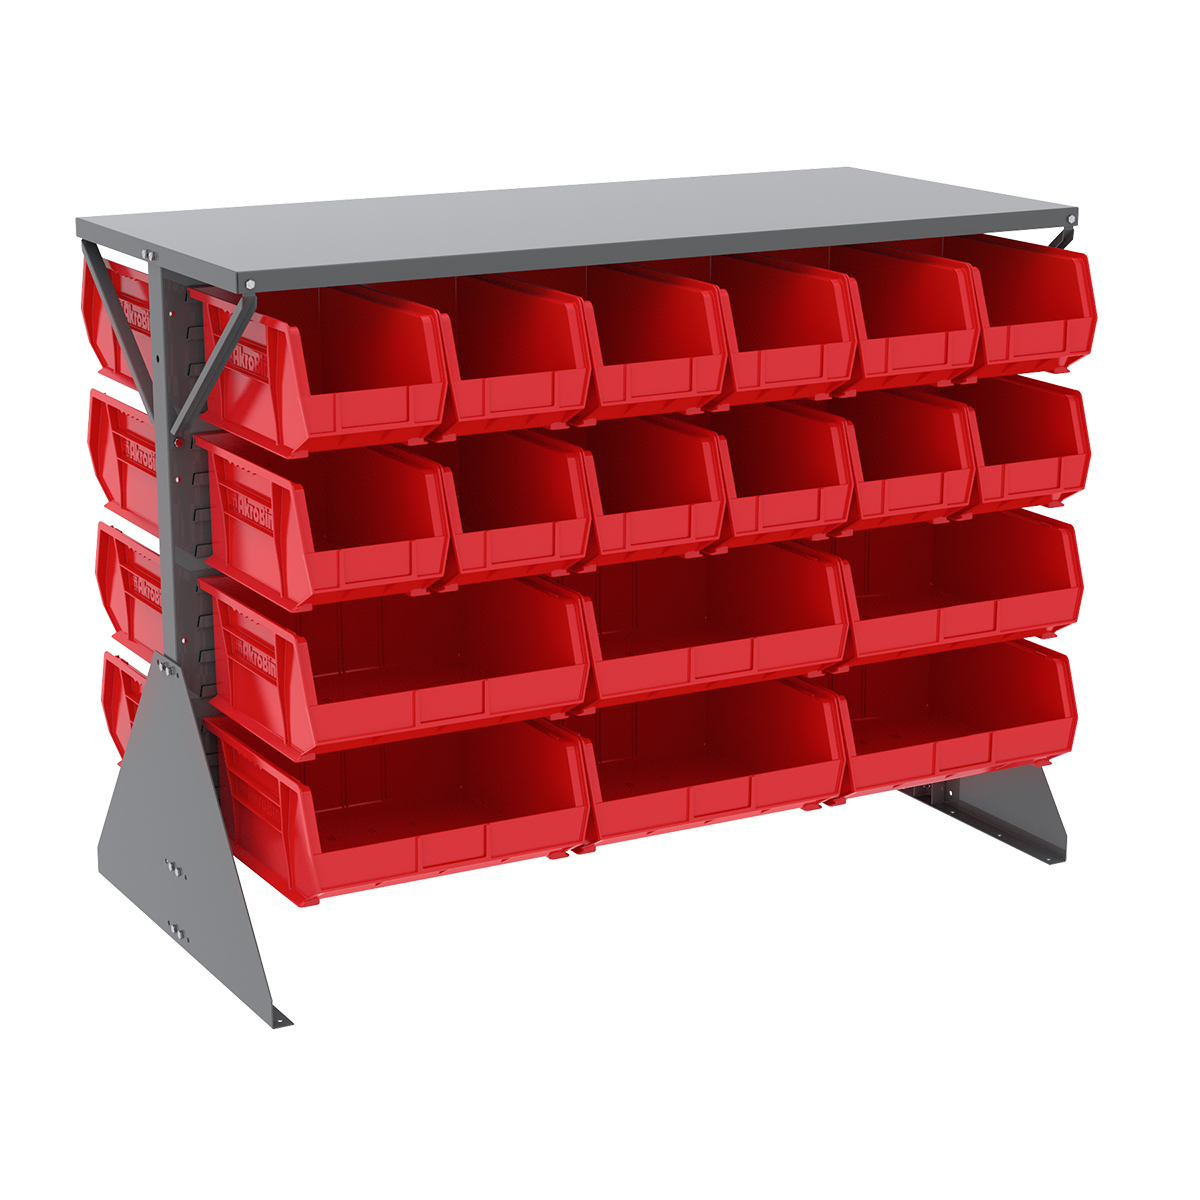 Item DISCONTINUED by Manufacturer.  Low Profile Floor Rack, 2-Sided, Shelf w/ 36 AkroBins, Gray/Red (30606GYASSTR).  This item sold in carton quantities of 1.